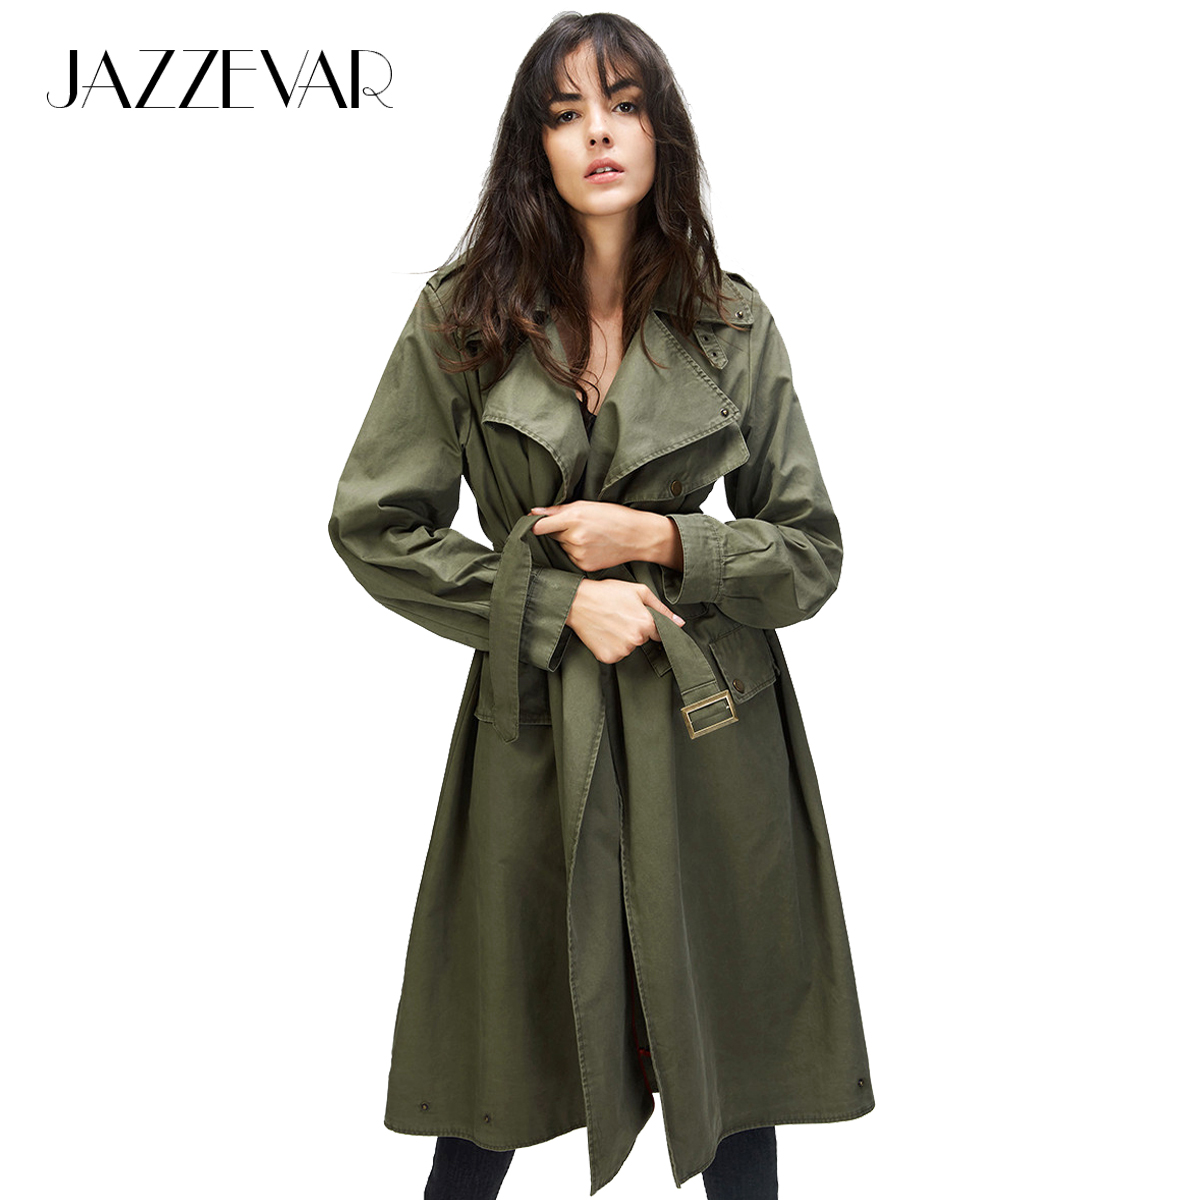 JAZZEVAR 2019 Autumn New Fashion Women's Casual   trench   coat Cotton Vintage Washed Military Outwear Loose Clothing with belt